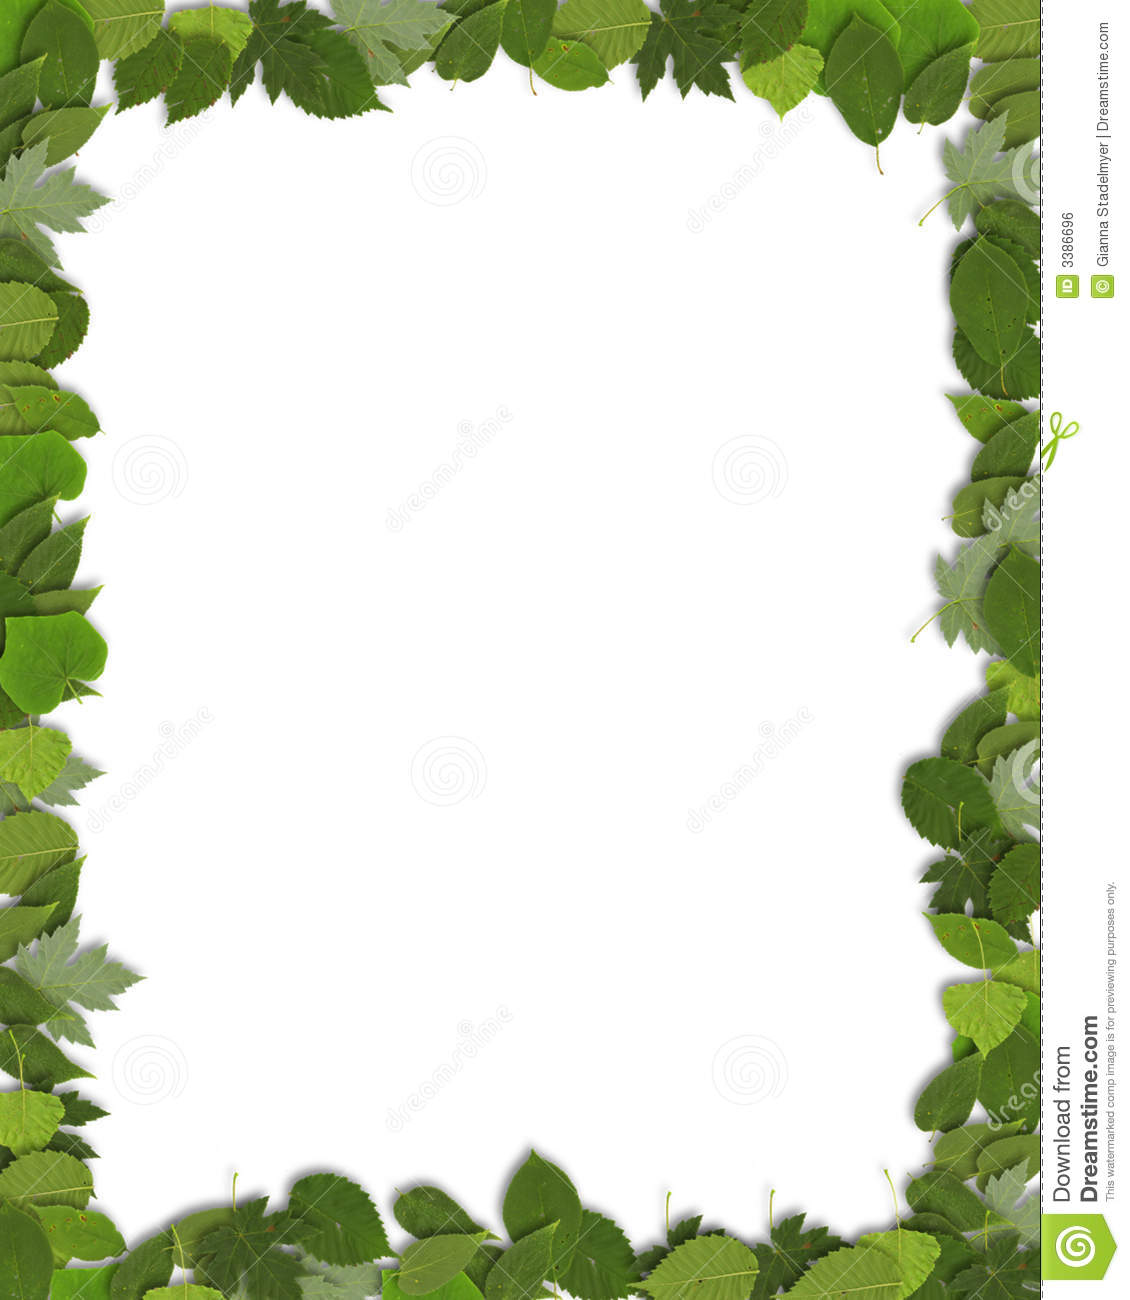 Vertical Green Leaf Border Royalty Free Stock Image - Image: 3386696